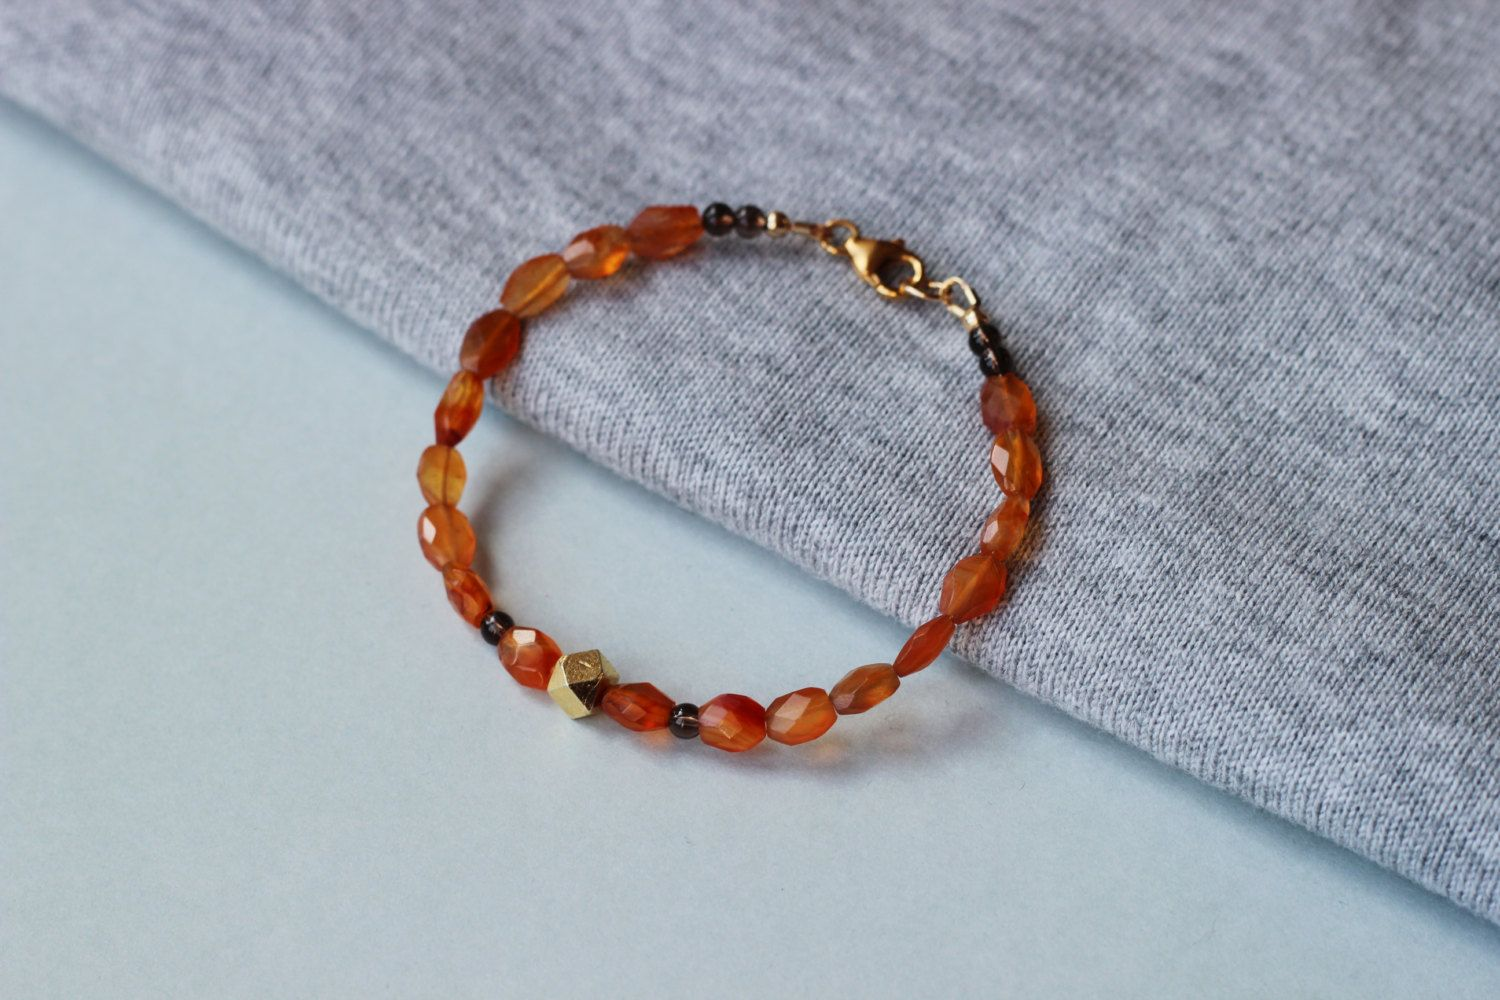 Carnelian Faceted and Smokey Quartz Gemstones with 24k Gold Vermeil Cube Bead Bracelet by ILgems on Etsy